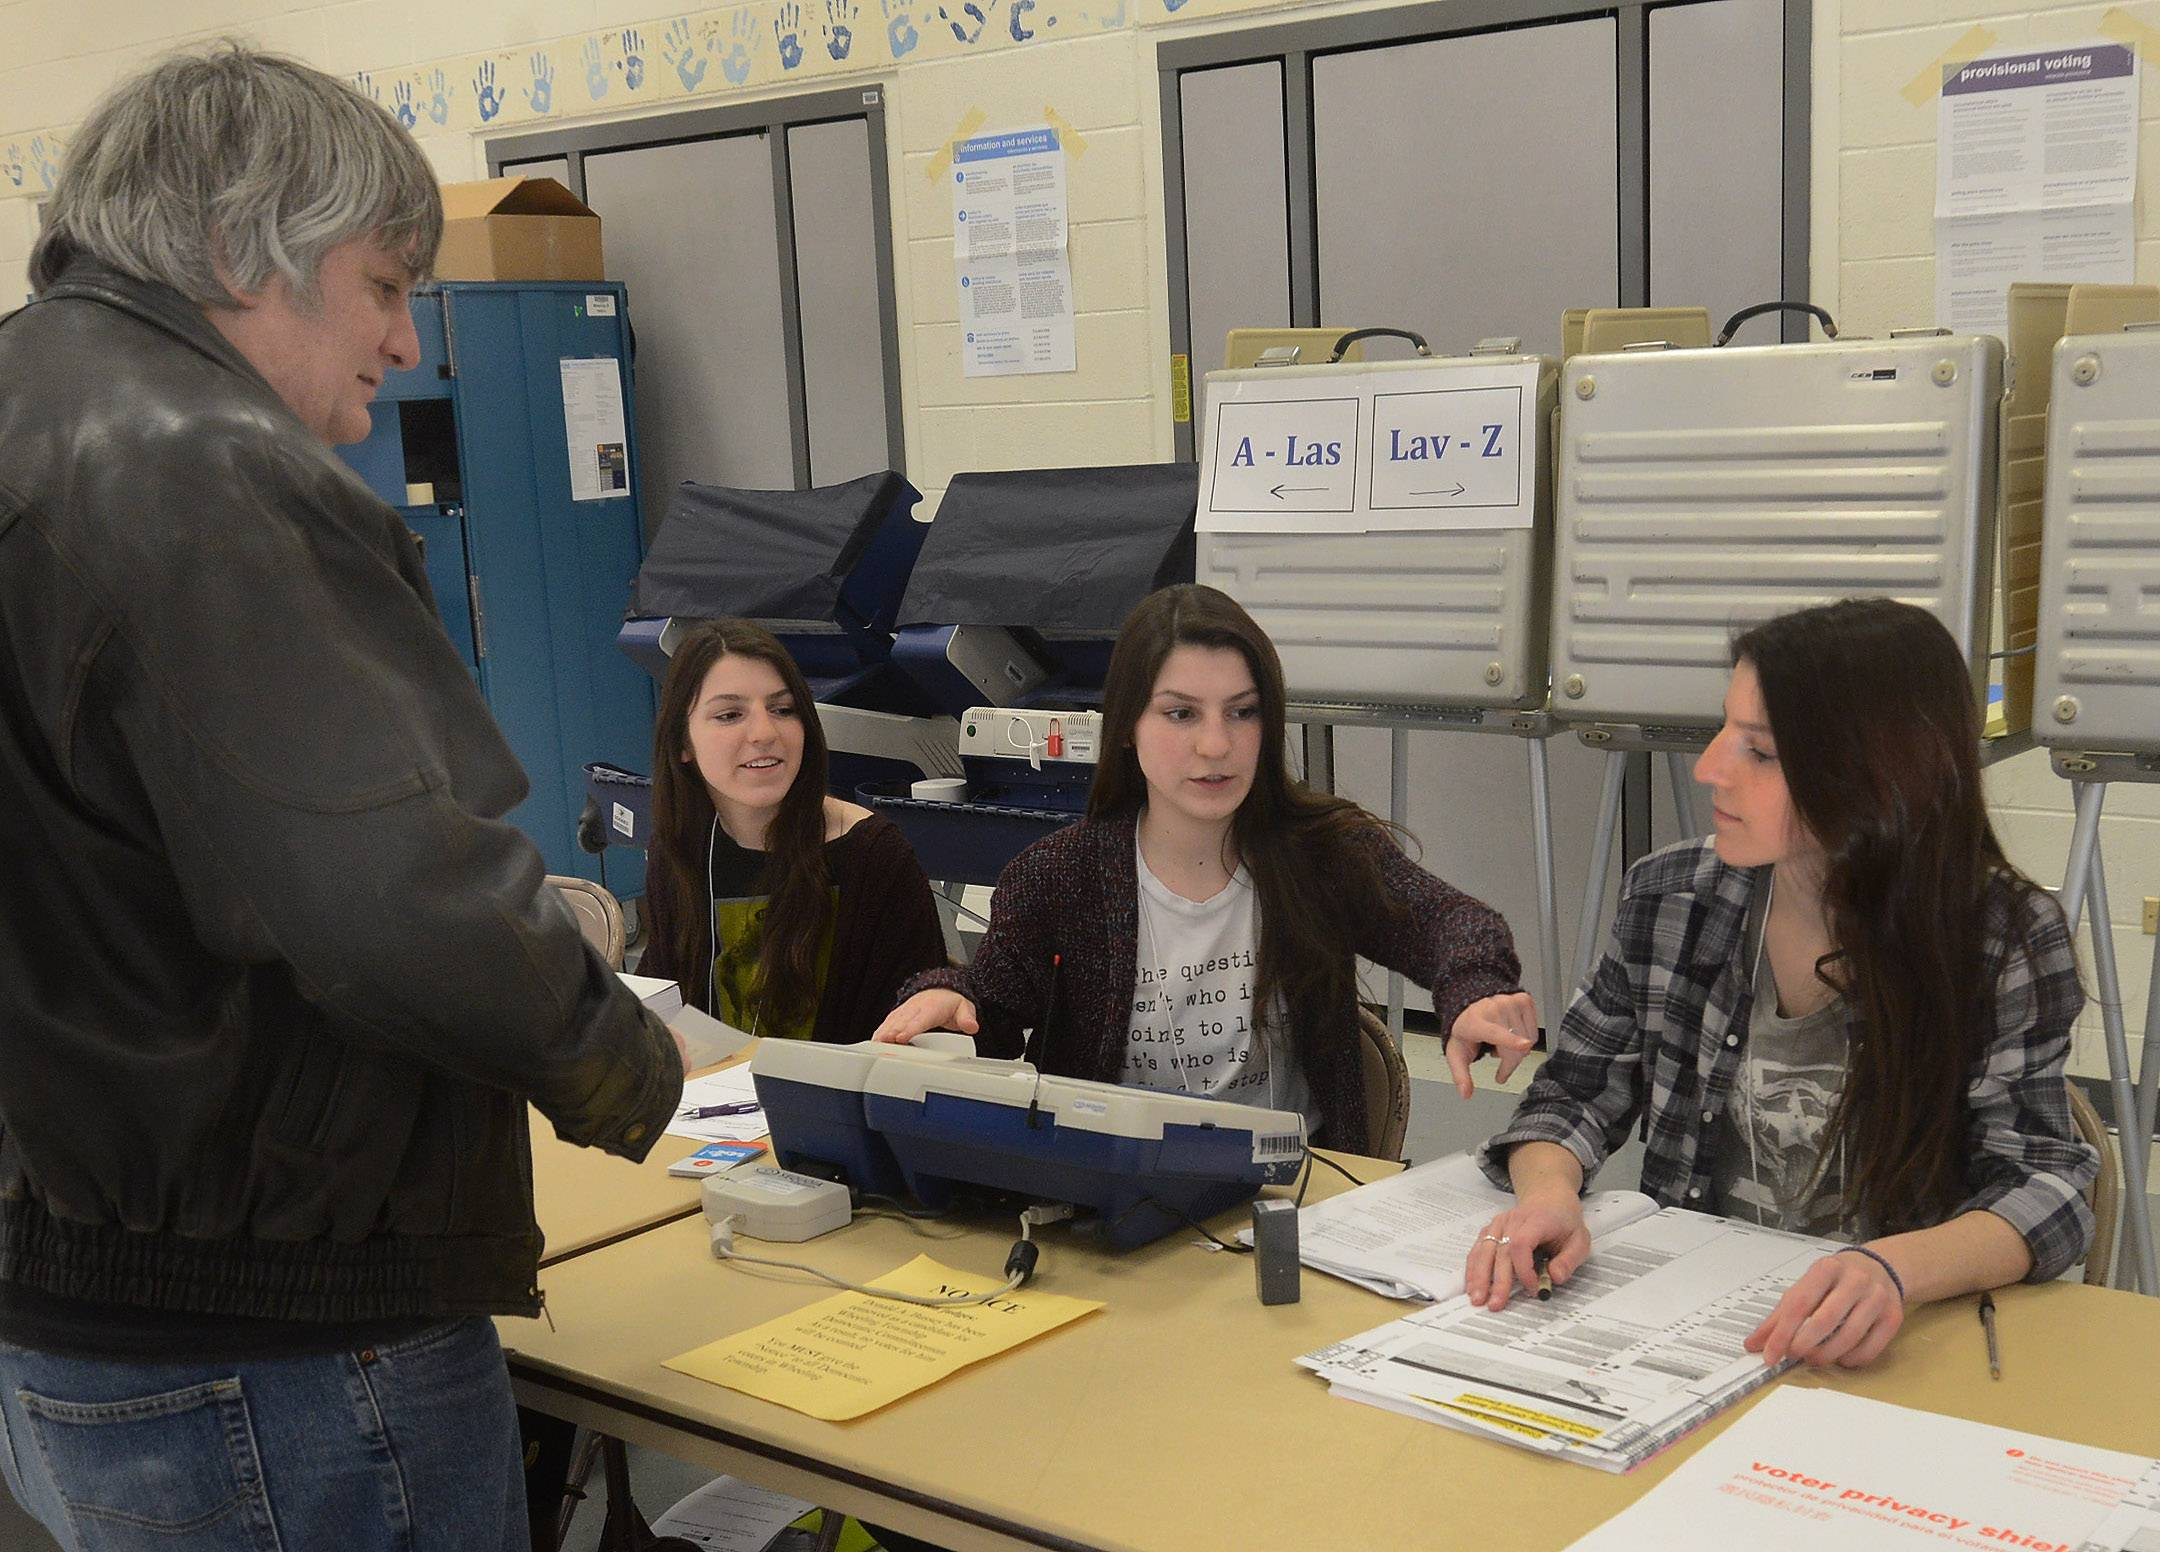 Triplets Frances, left, Theresa, and Mary Ponicki, right, issue a ballot to  Russel Butler of Arlington Heights Tuesday morning at the Riley School polling place in Arlington Heights.